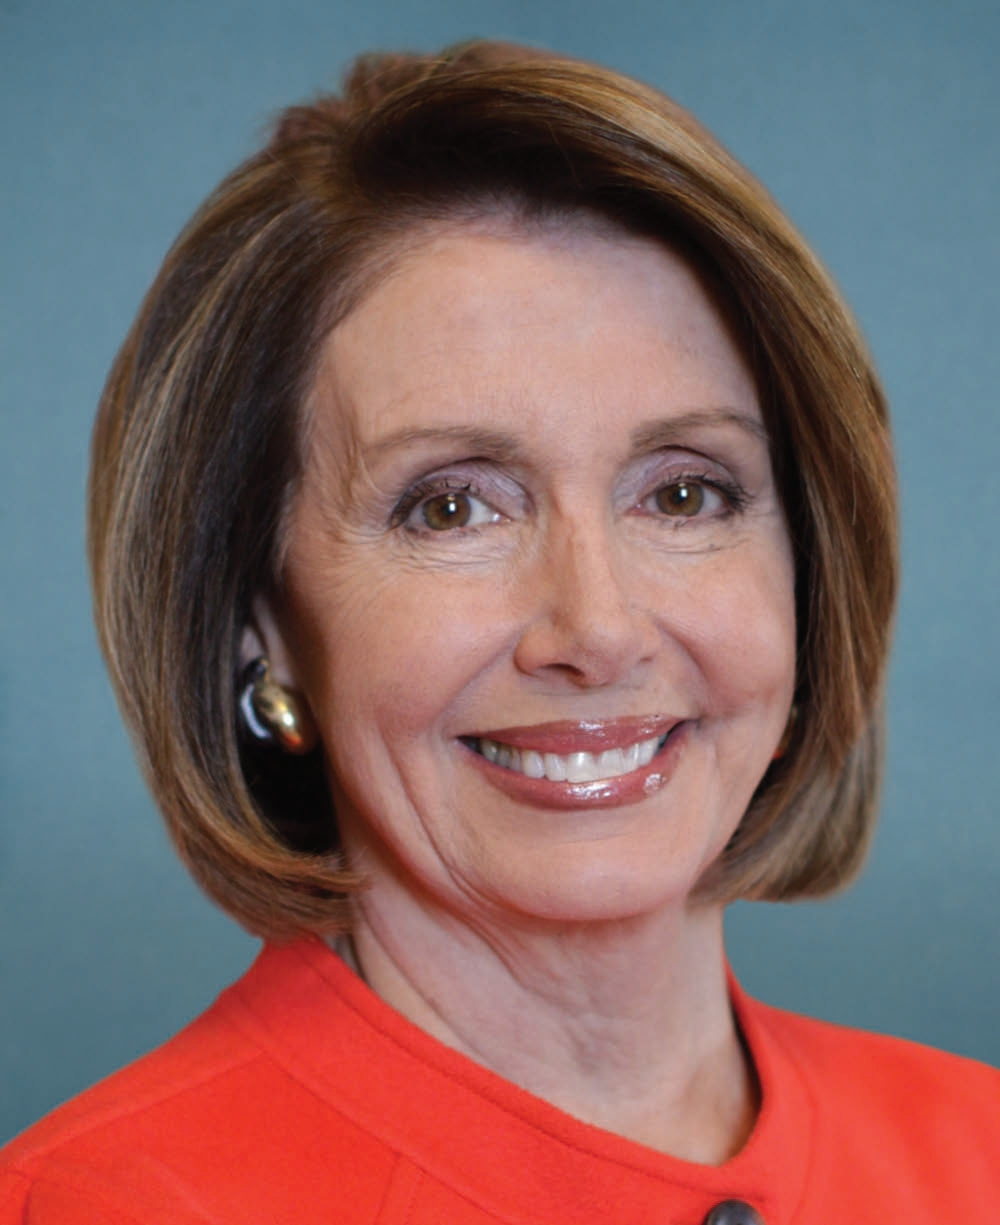 Was Nancy Pelosi In A Car Accident Yesterday